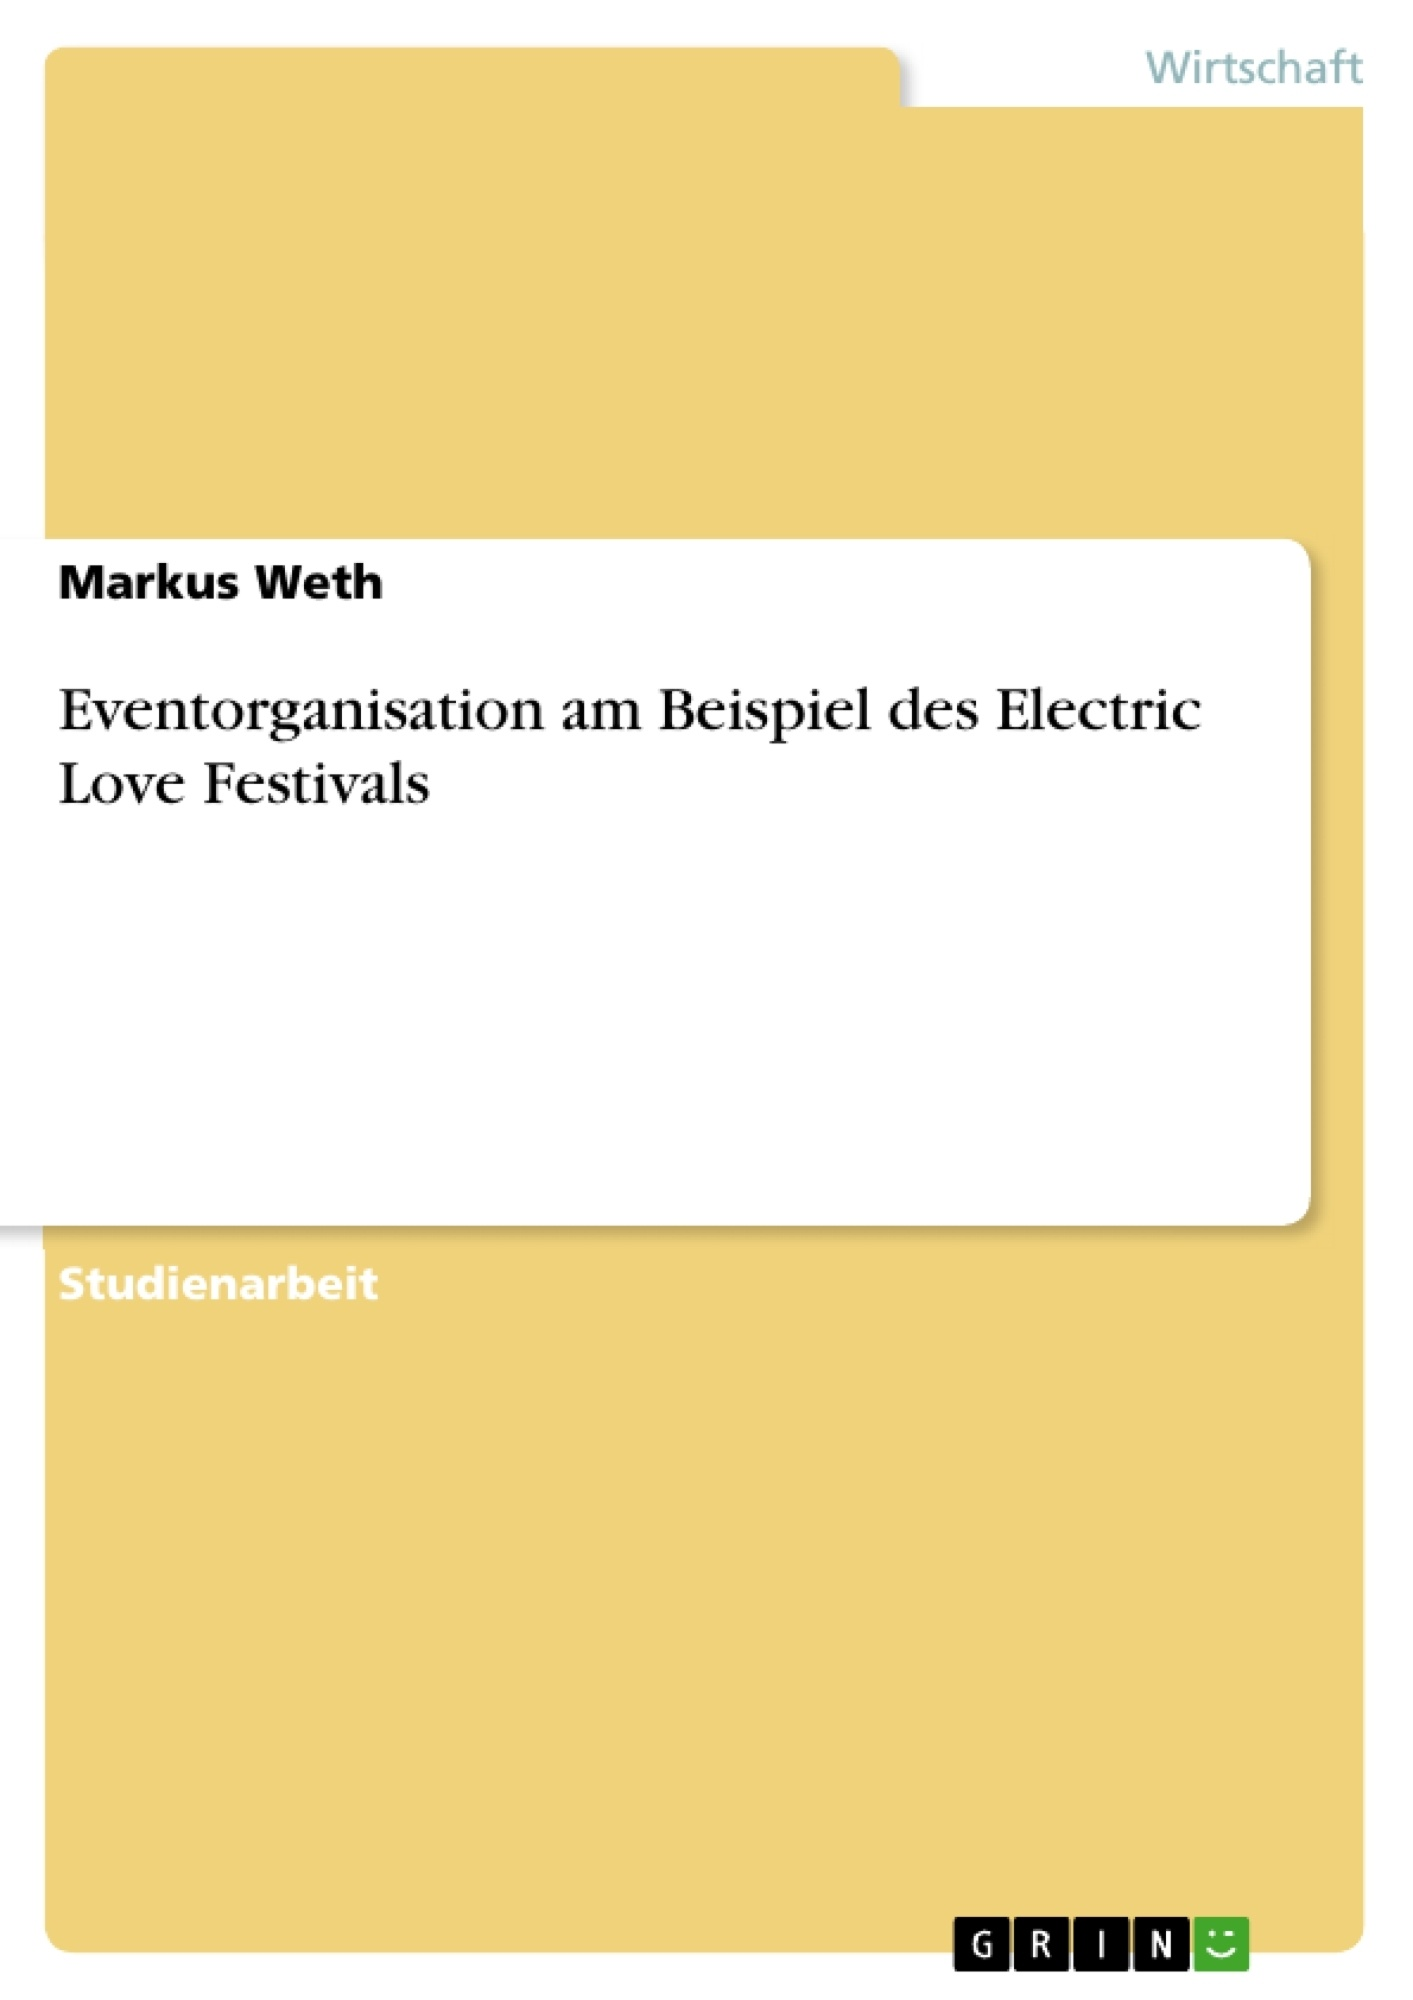 Titel: Eventorganisation am Beispiel des Electric Love Festivals